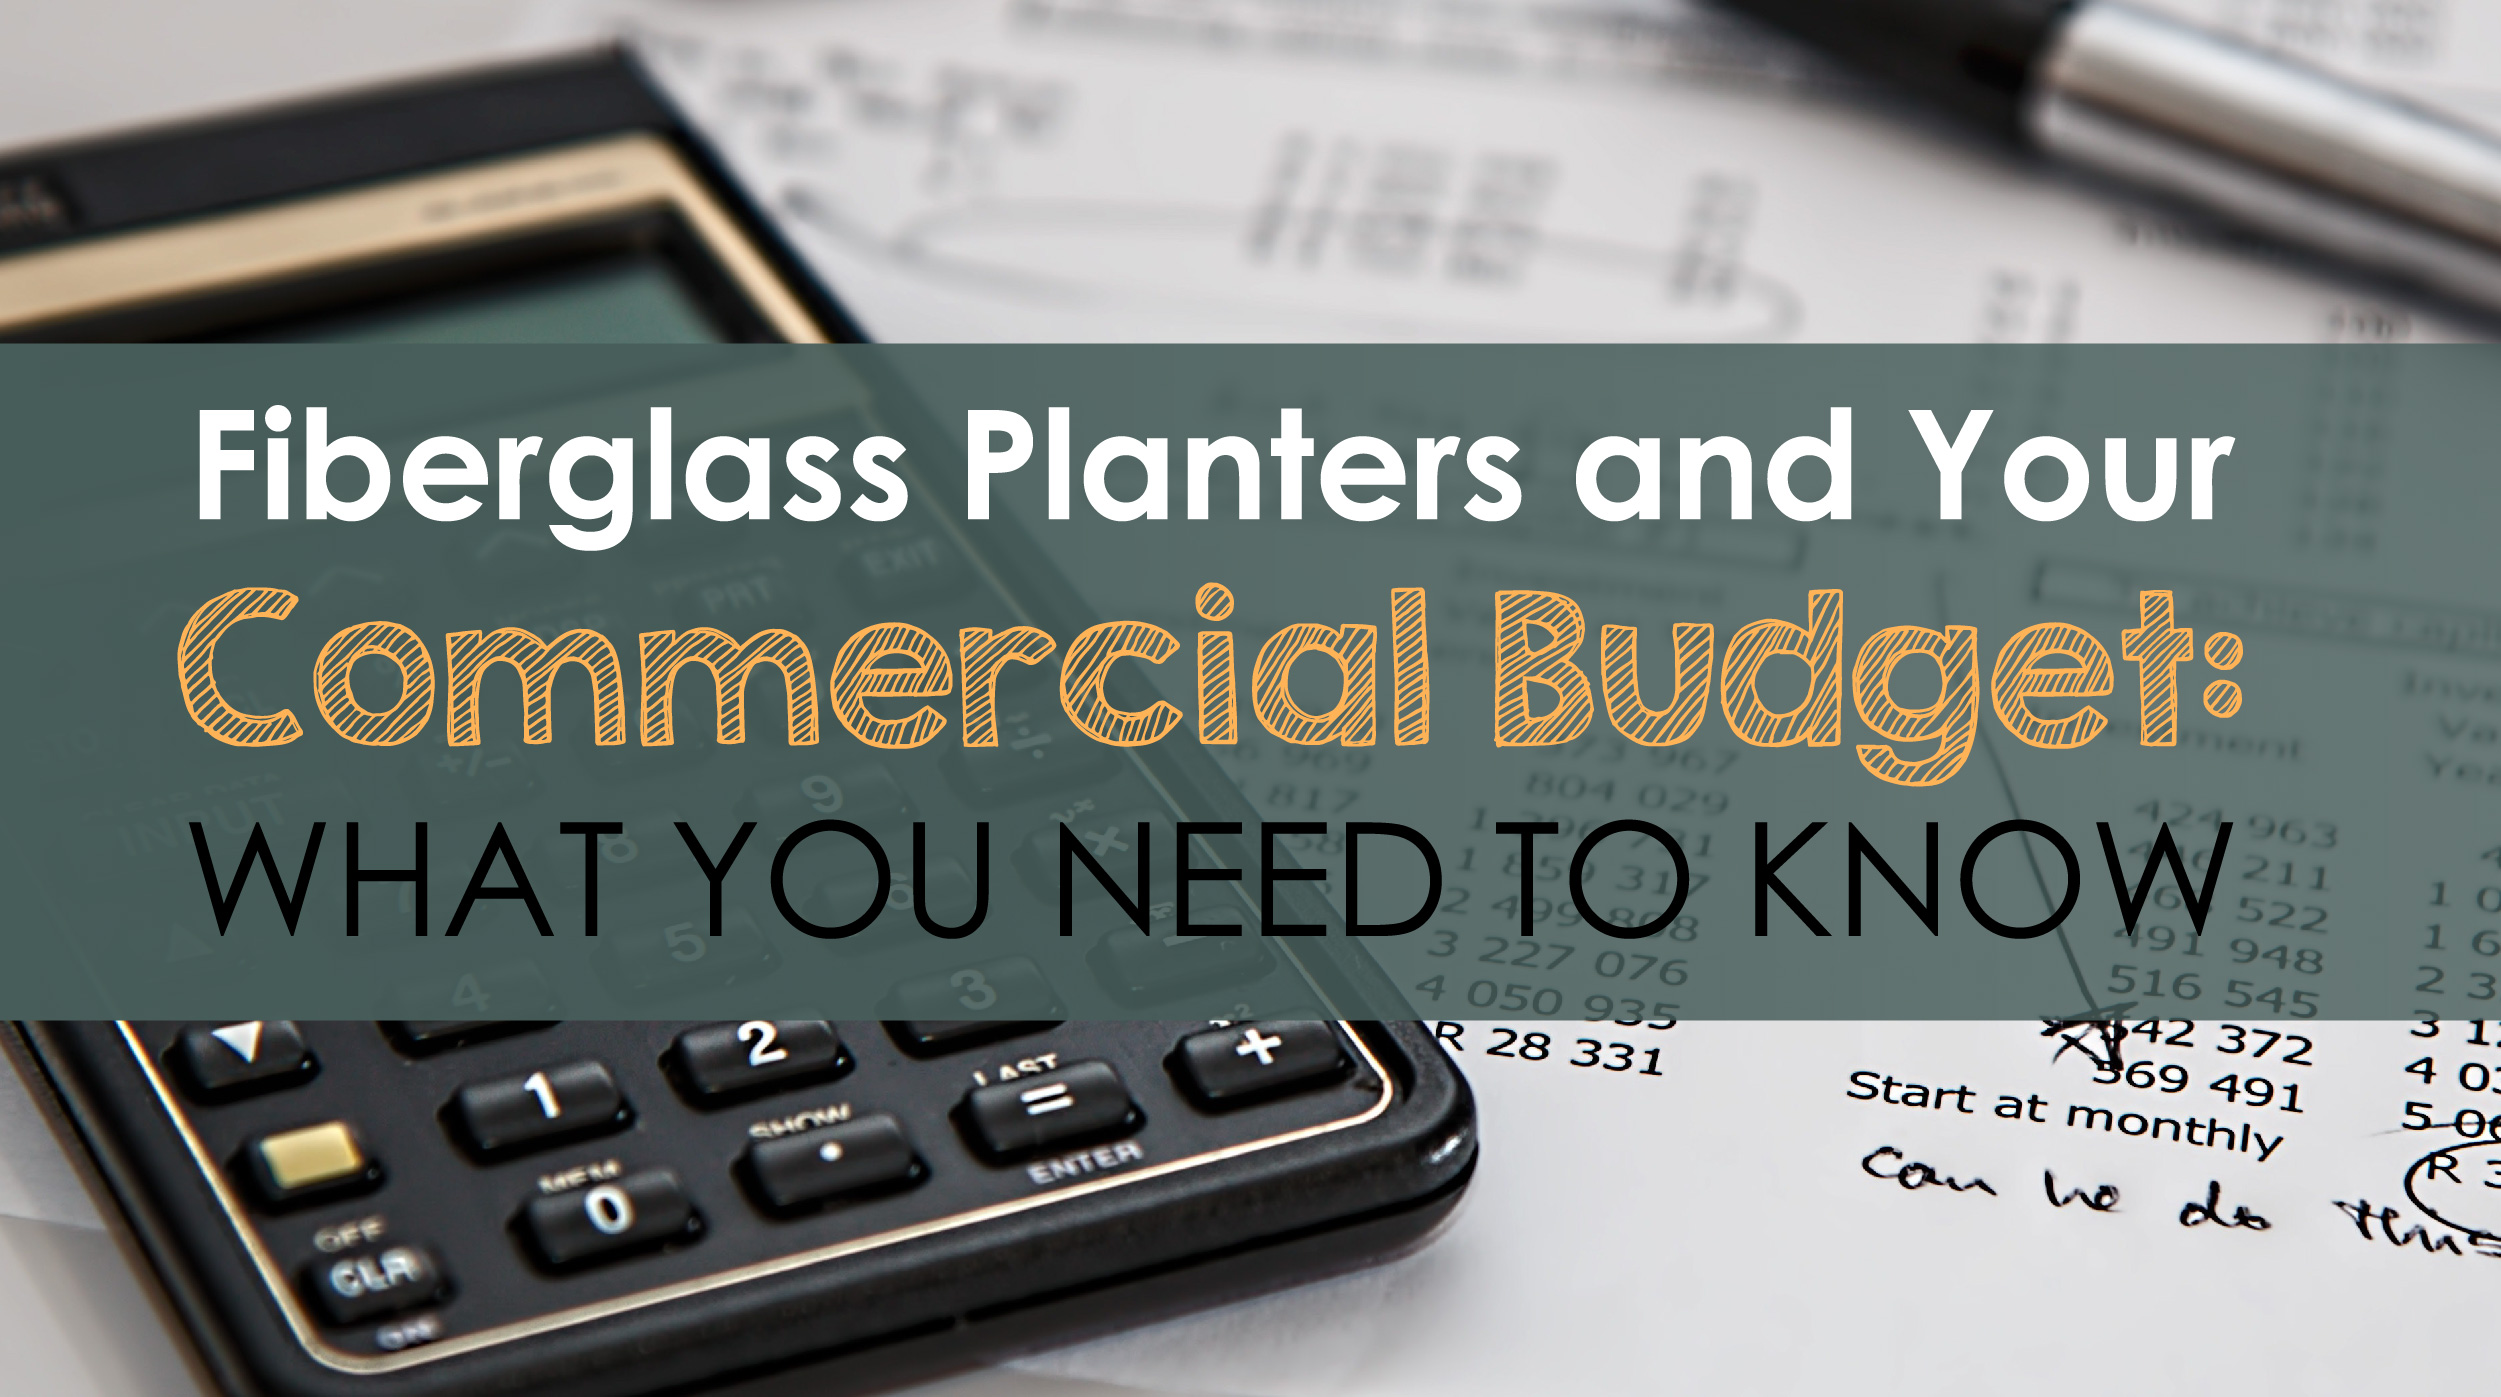 Fiberglass Planters and Your Commercial Budget